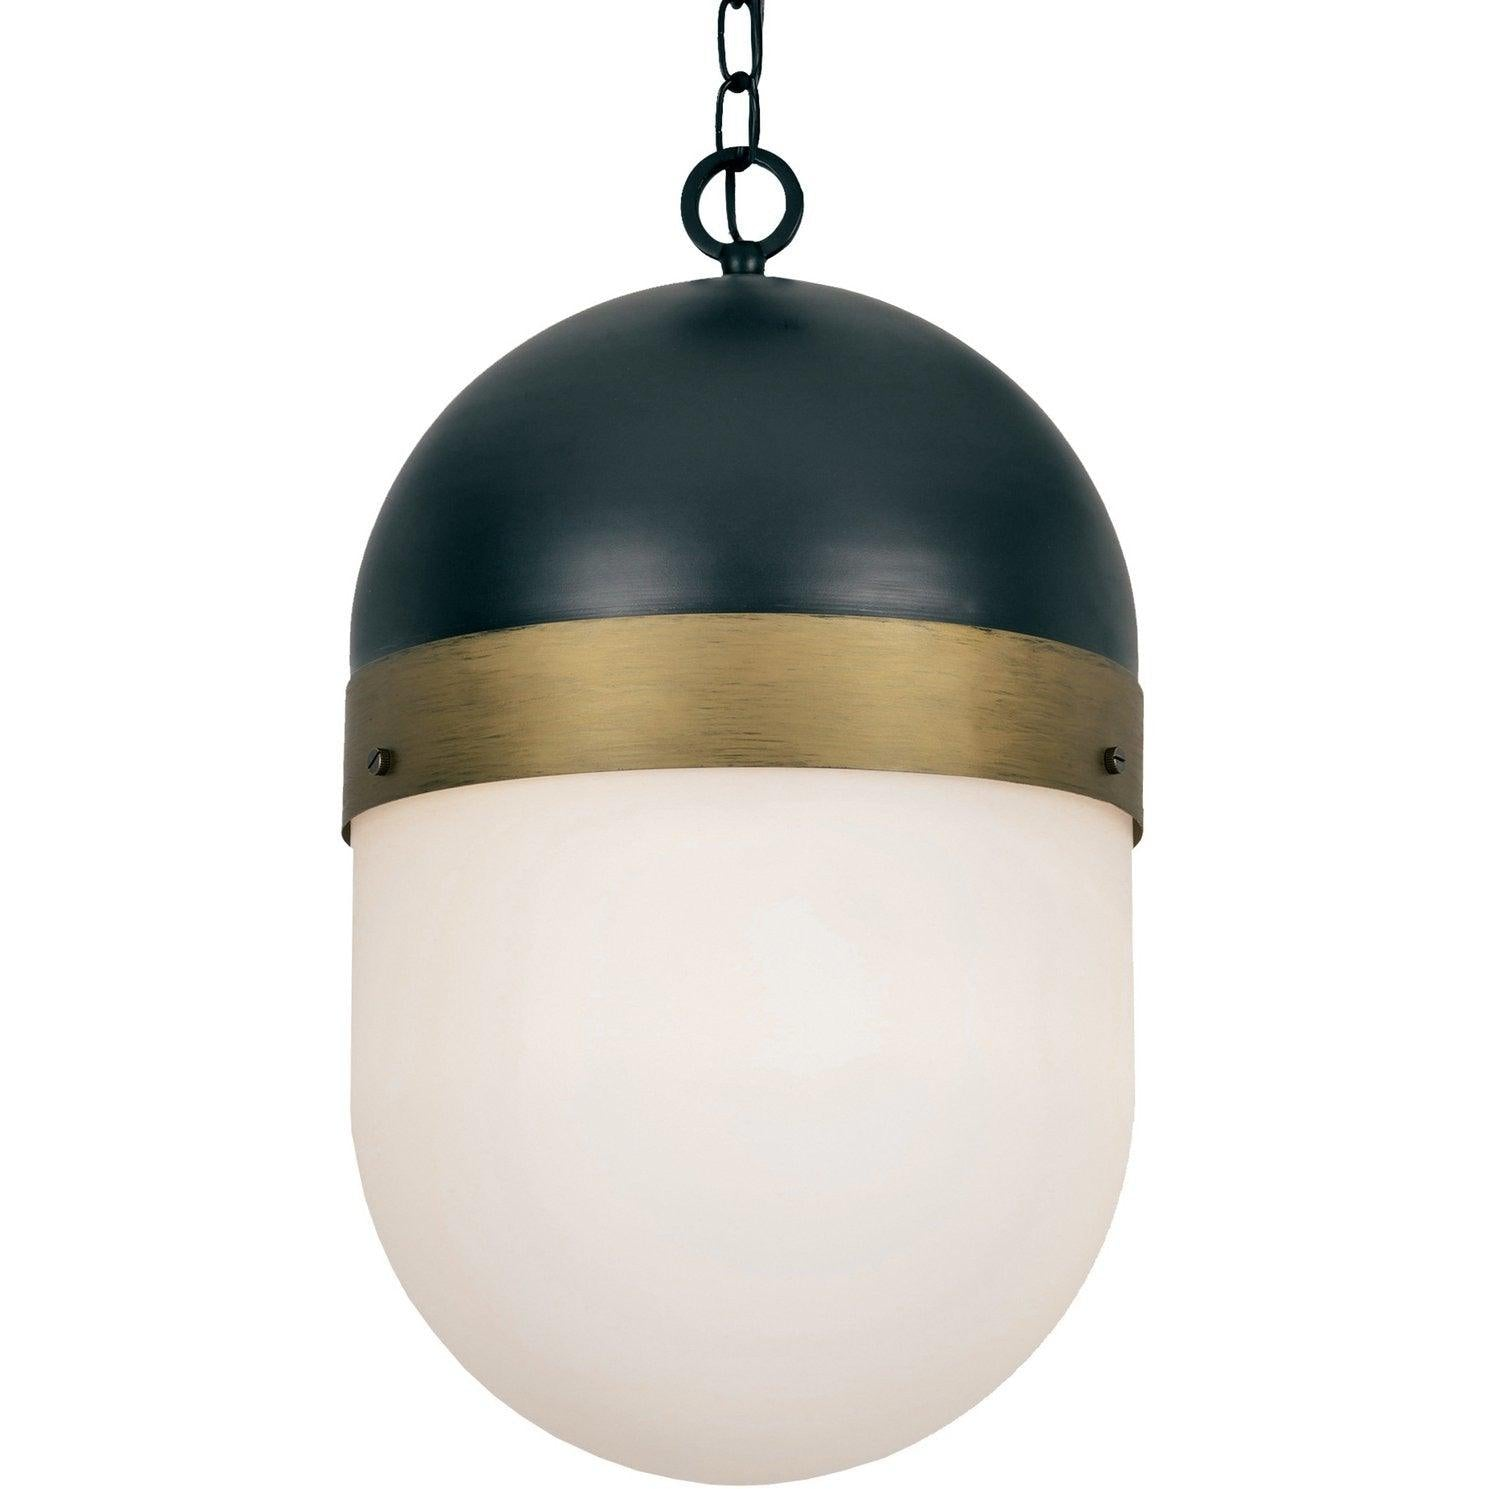 Crystorama - CAP-8506-MK-TG - Three Light Outdoor Pendant - Capsule - Matte Black